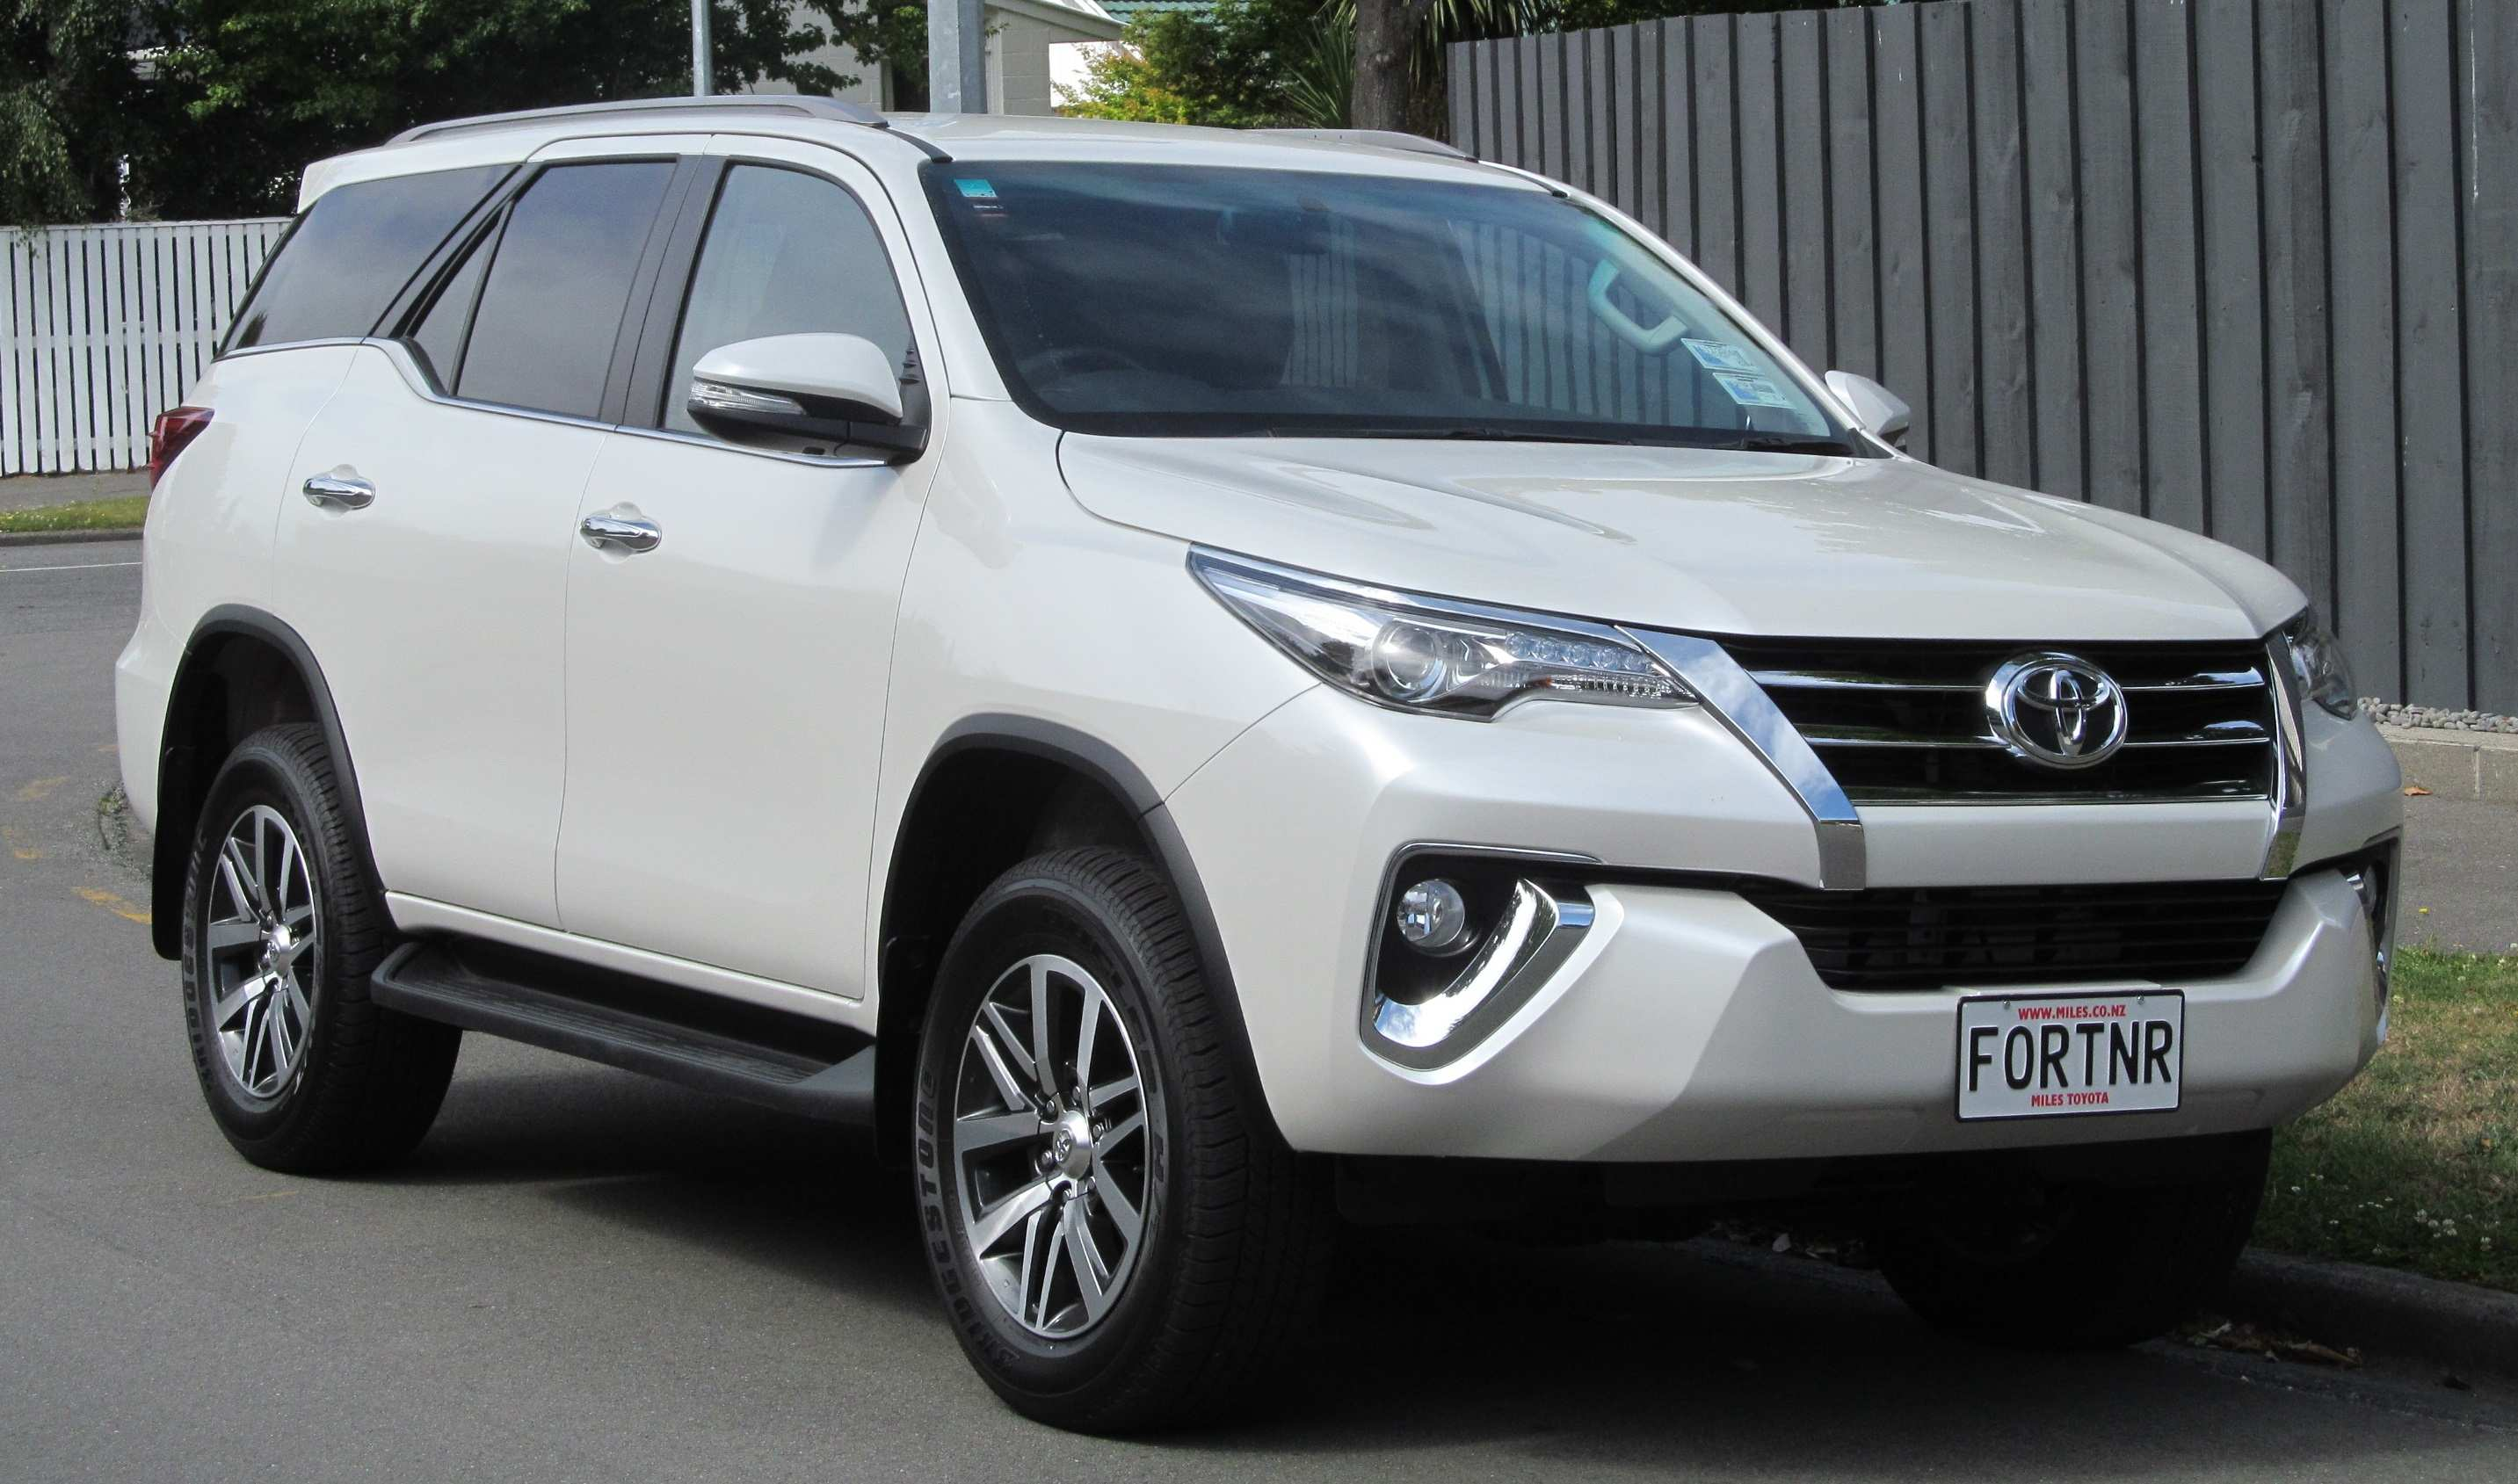 58 New Best Toyota Hilux 2019 Facelift Concept Redesign and Concept with Best Toyota Hilux 2019 Facelift Concept